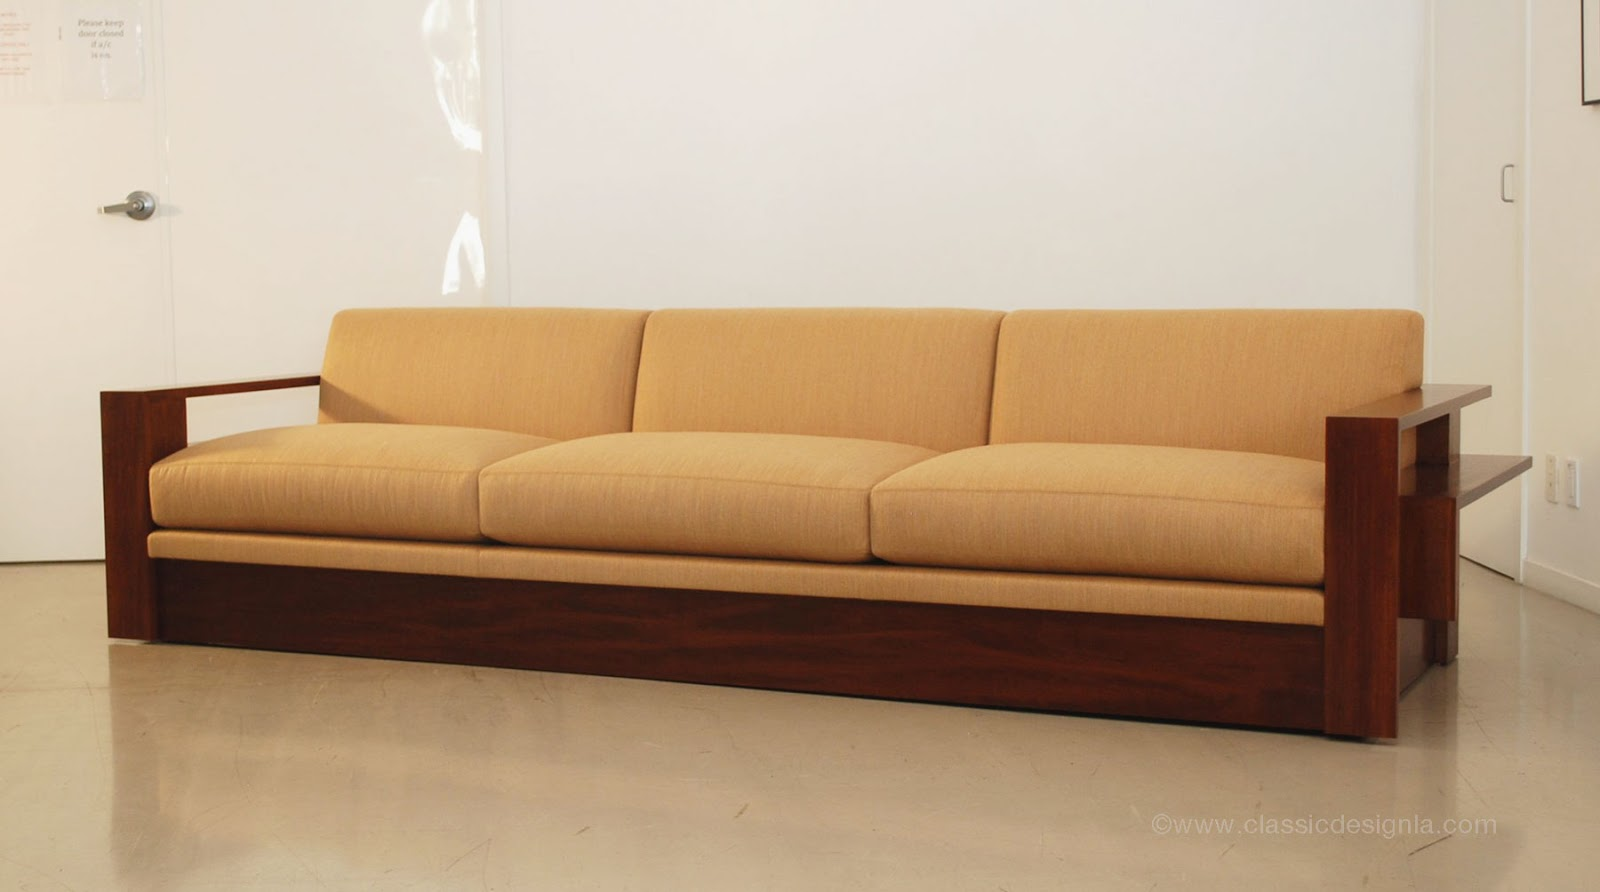 Wooden Sectional Sofa Modern U Shaped Classic Design Custom Wood Frame